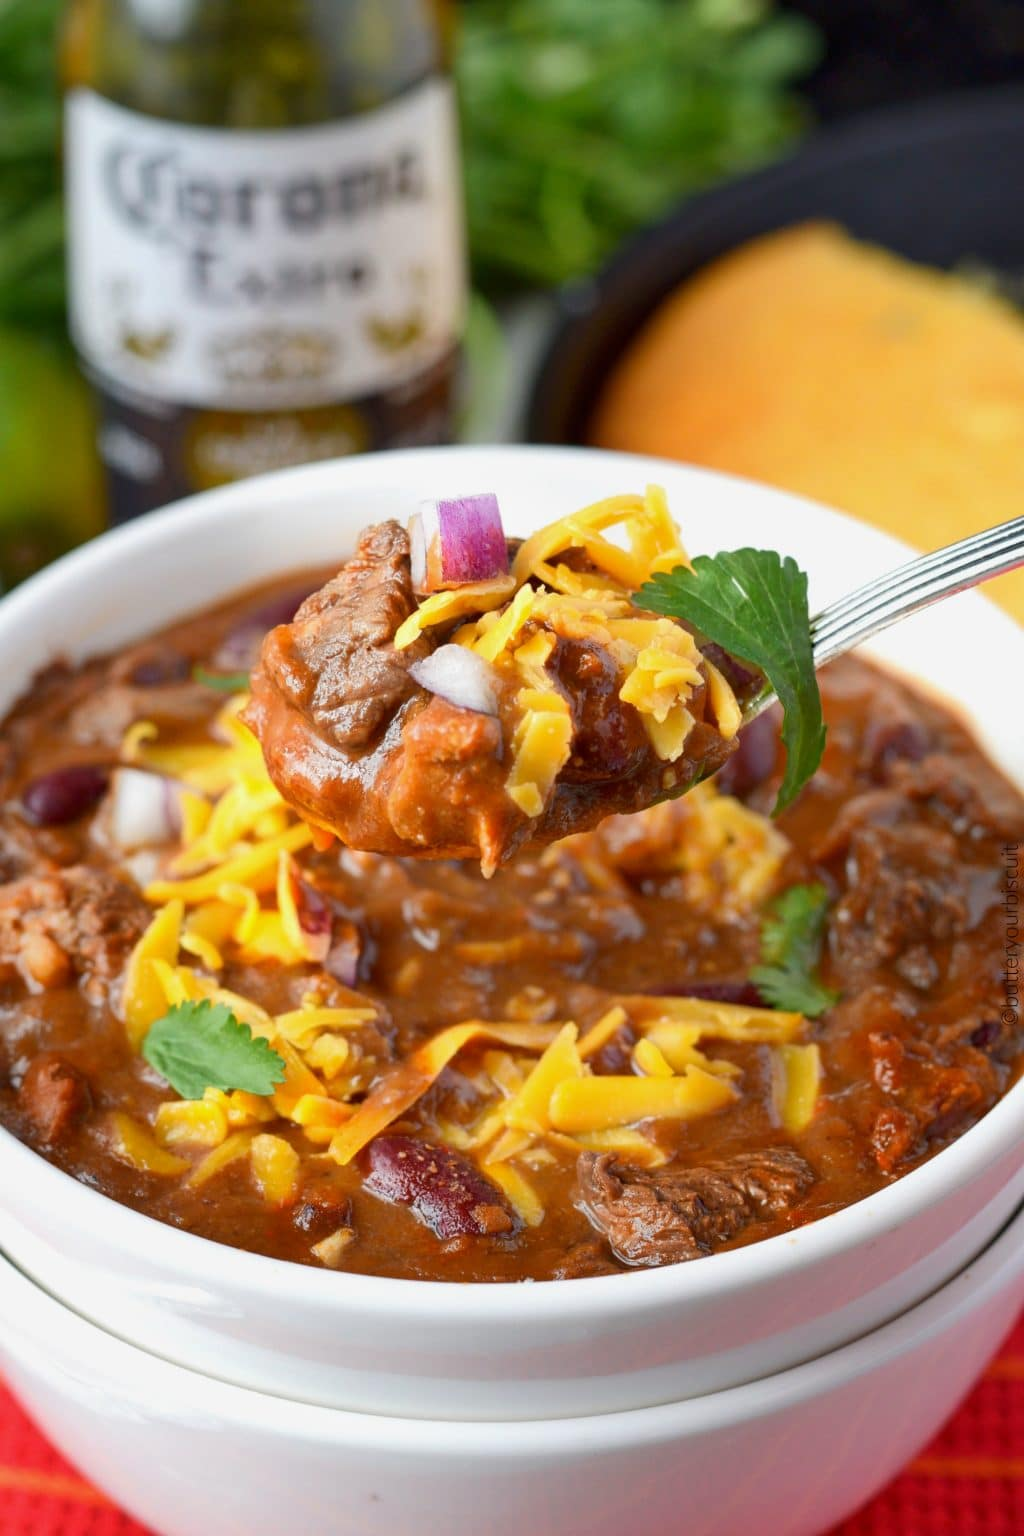 Ribeye steak chili in a white bowl with a spoon